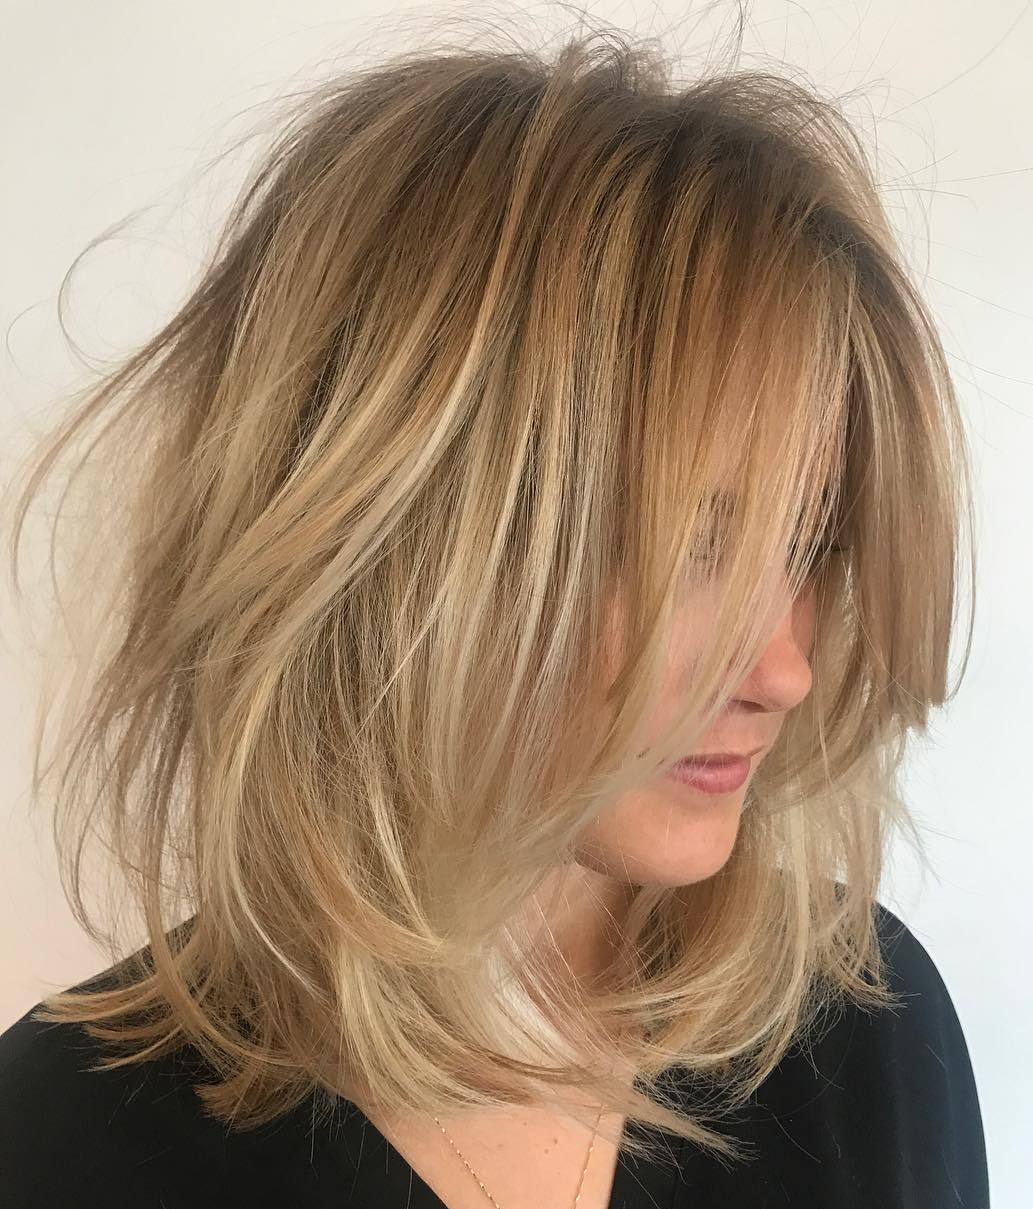 easy to style haircuts for fine hair 70 devastatingly cool haircuts for thin hair 1271 | 17 tousled blonde bob hairstyle